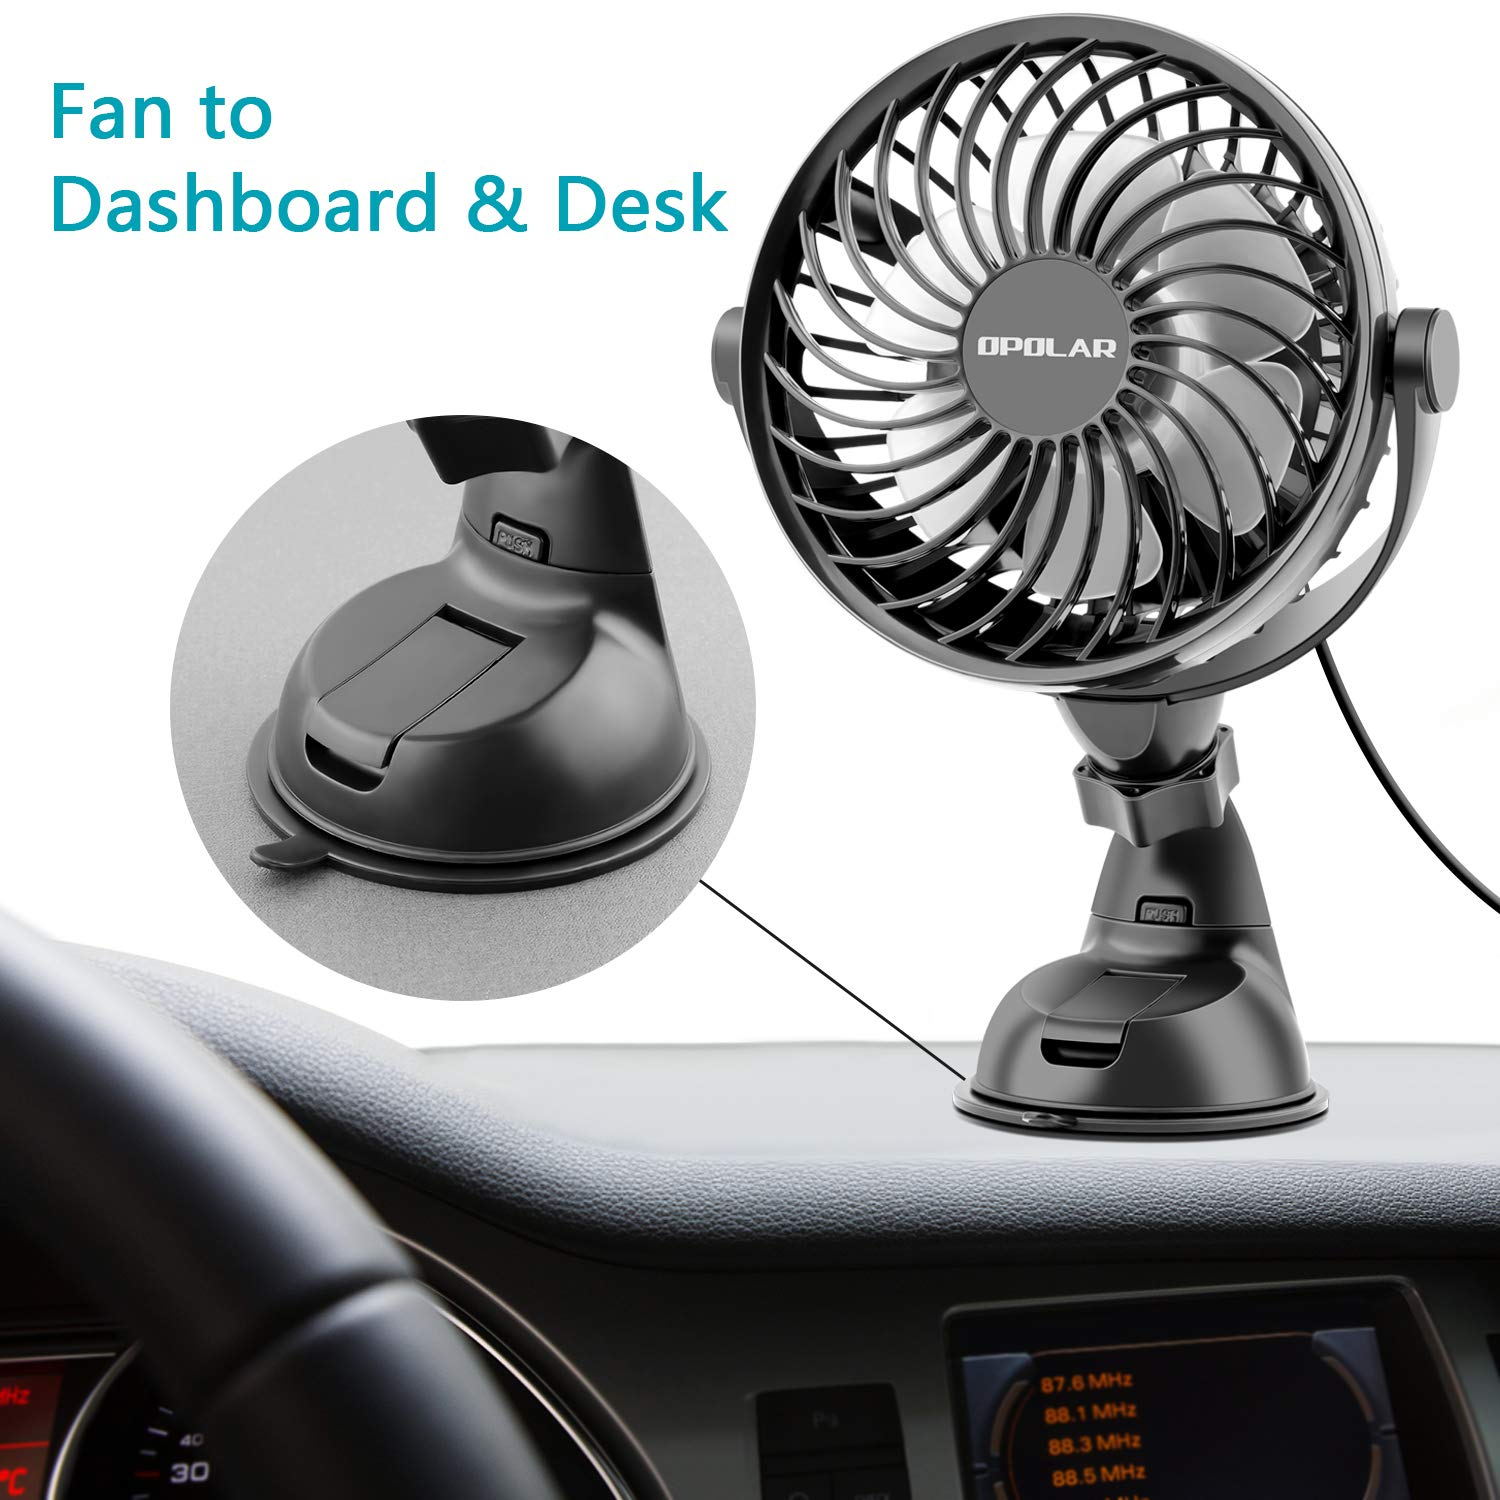 Ideal for Sedan SUV RV Boat Auto Vehicles OPOLAR Mini Car /& Desk Fan with Strong Suction Cup High Airflow Four Speeds NO Battery Firmly Attached to Dashboard /& Windshield Powered Only by USB